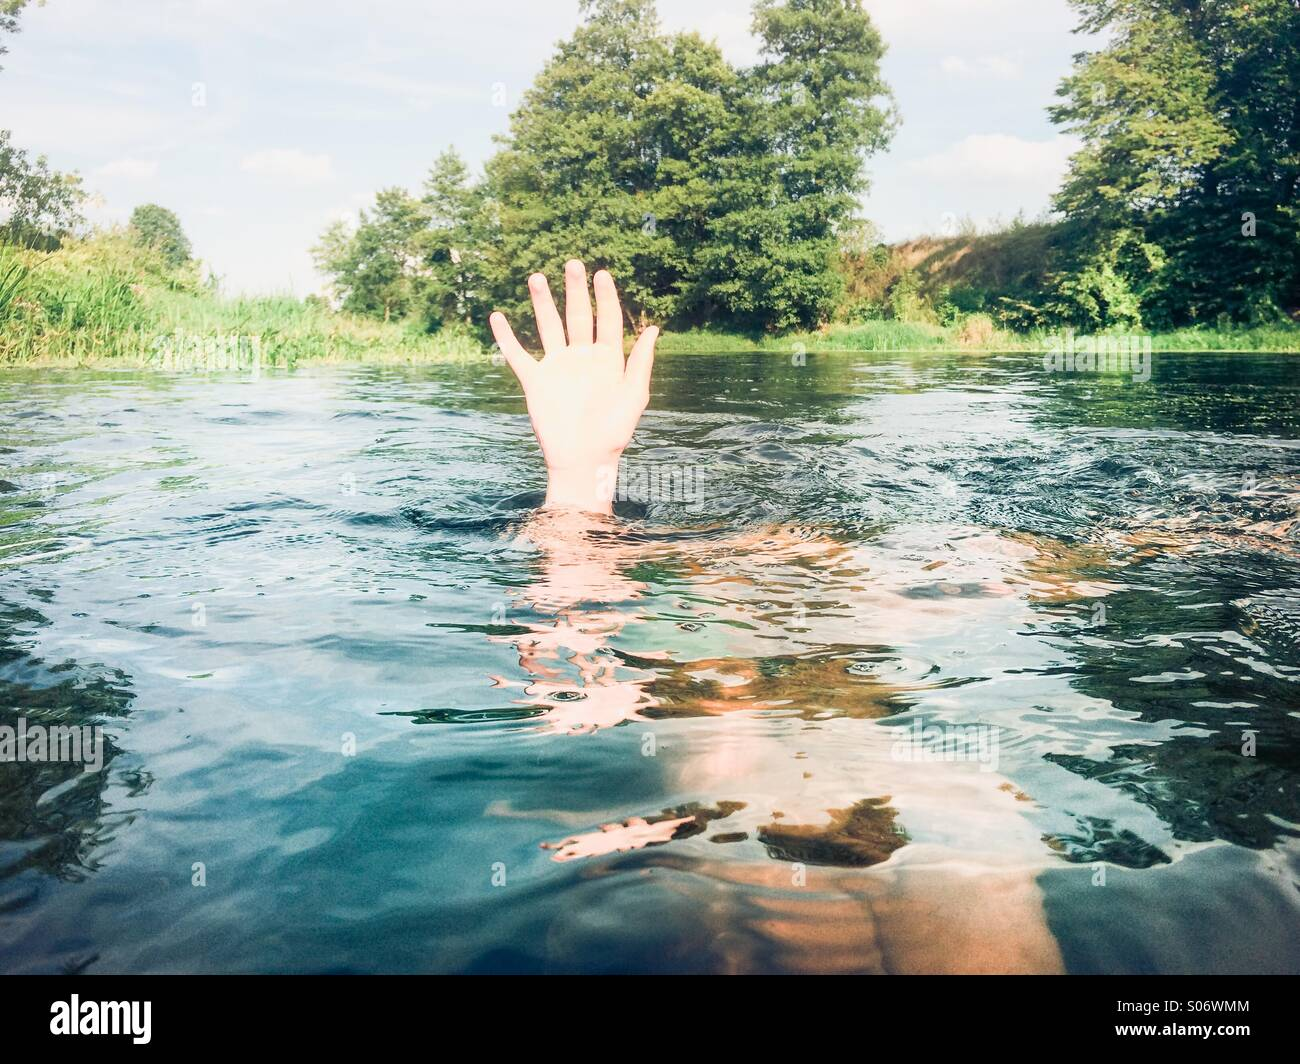 Boy submerged in a pure river keeping his hand above the water - Stock Image